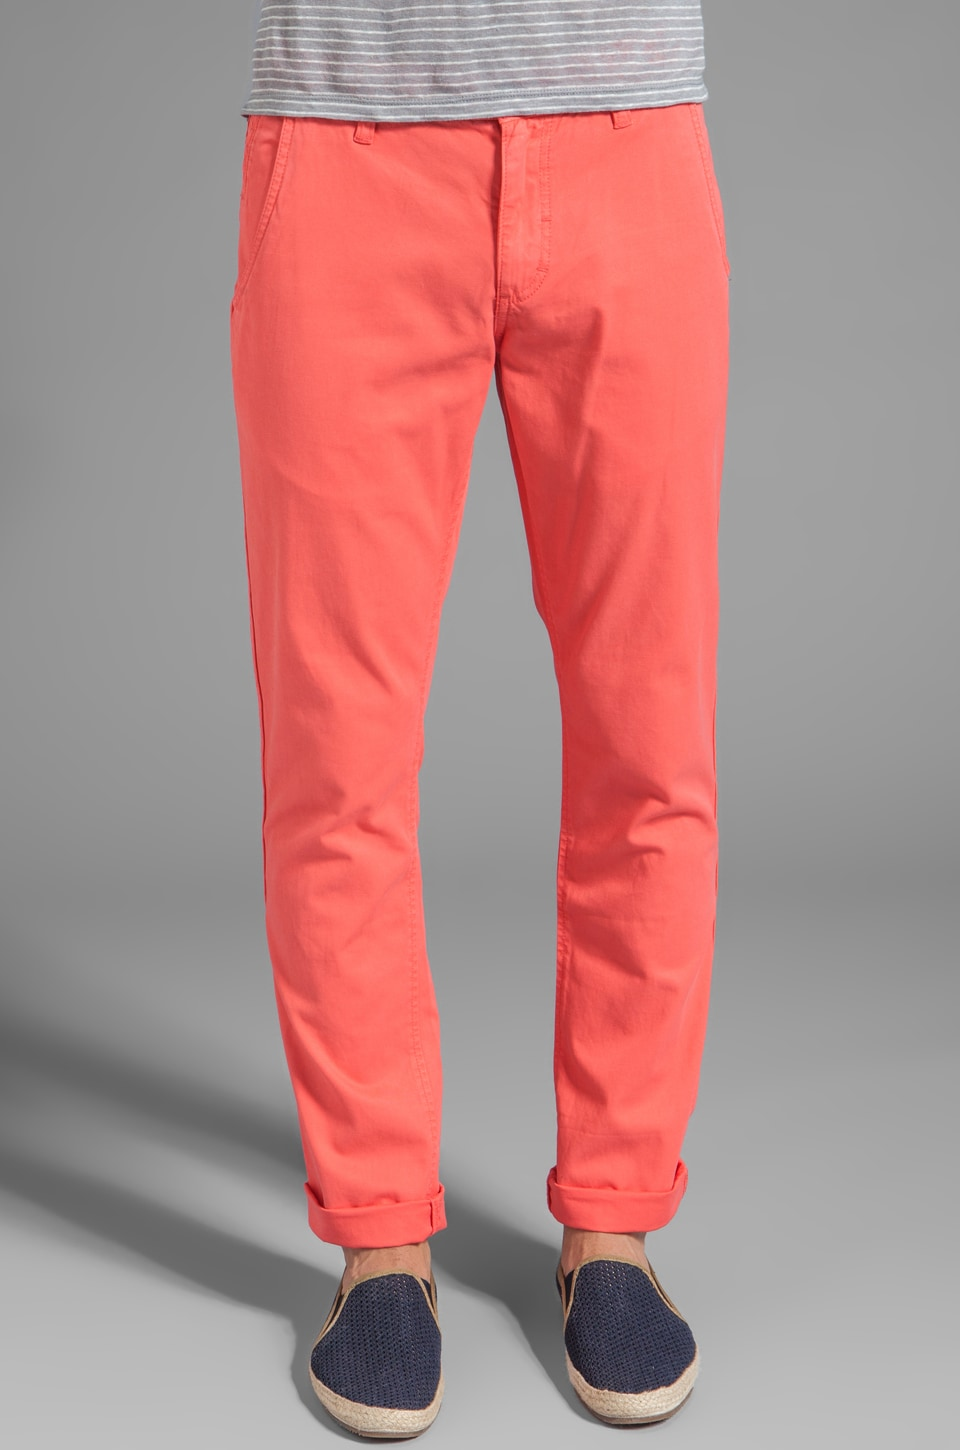 life/after/denim Skinny Fit Chino in Melon